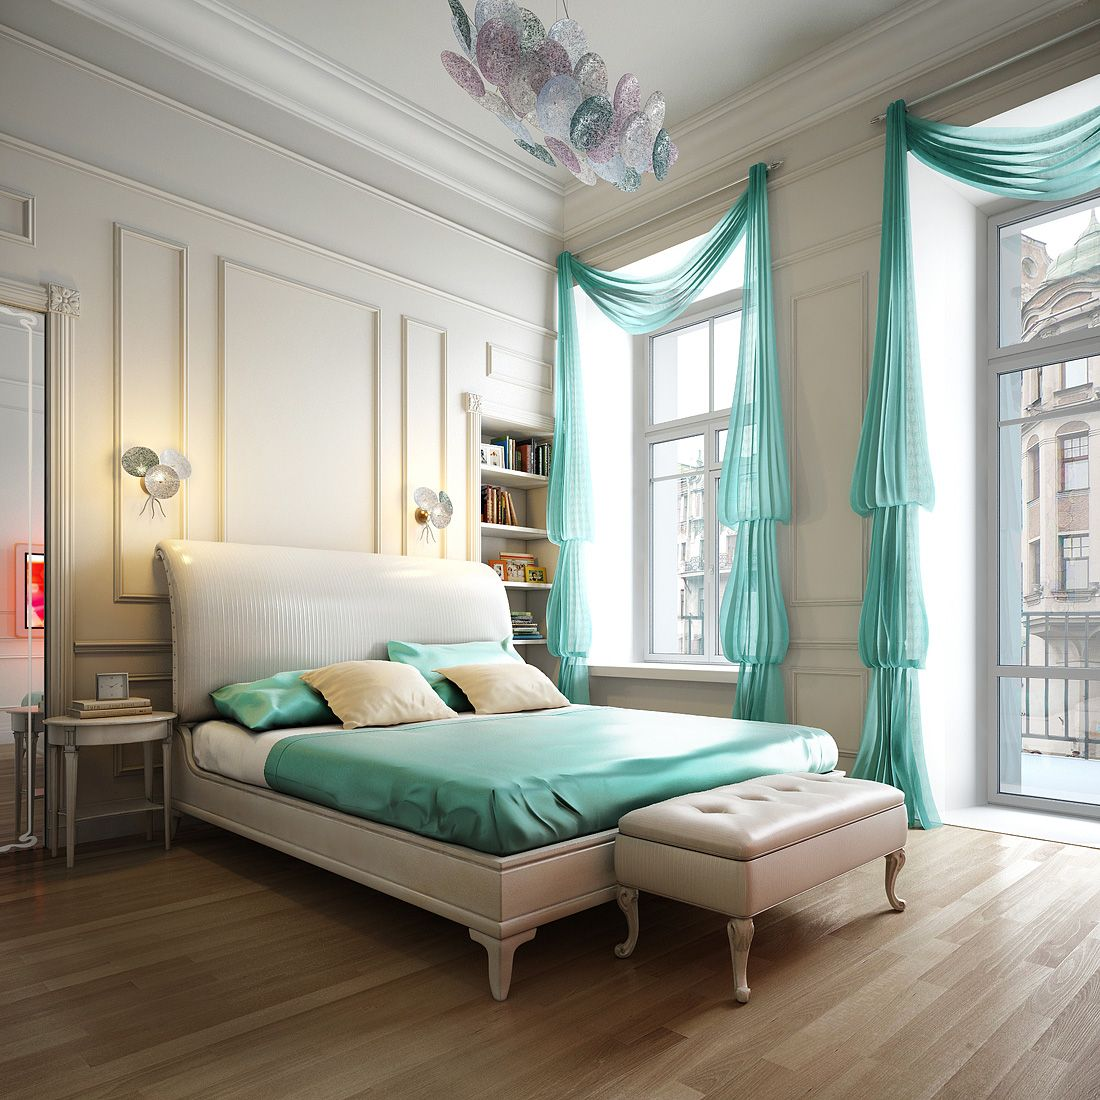 21 Master Bedroom Interior Designs Decorating Ideas: It's A Colourful Life: Turquoise Love